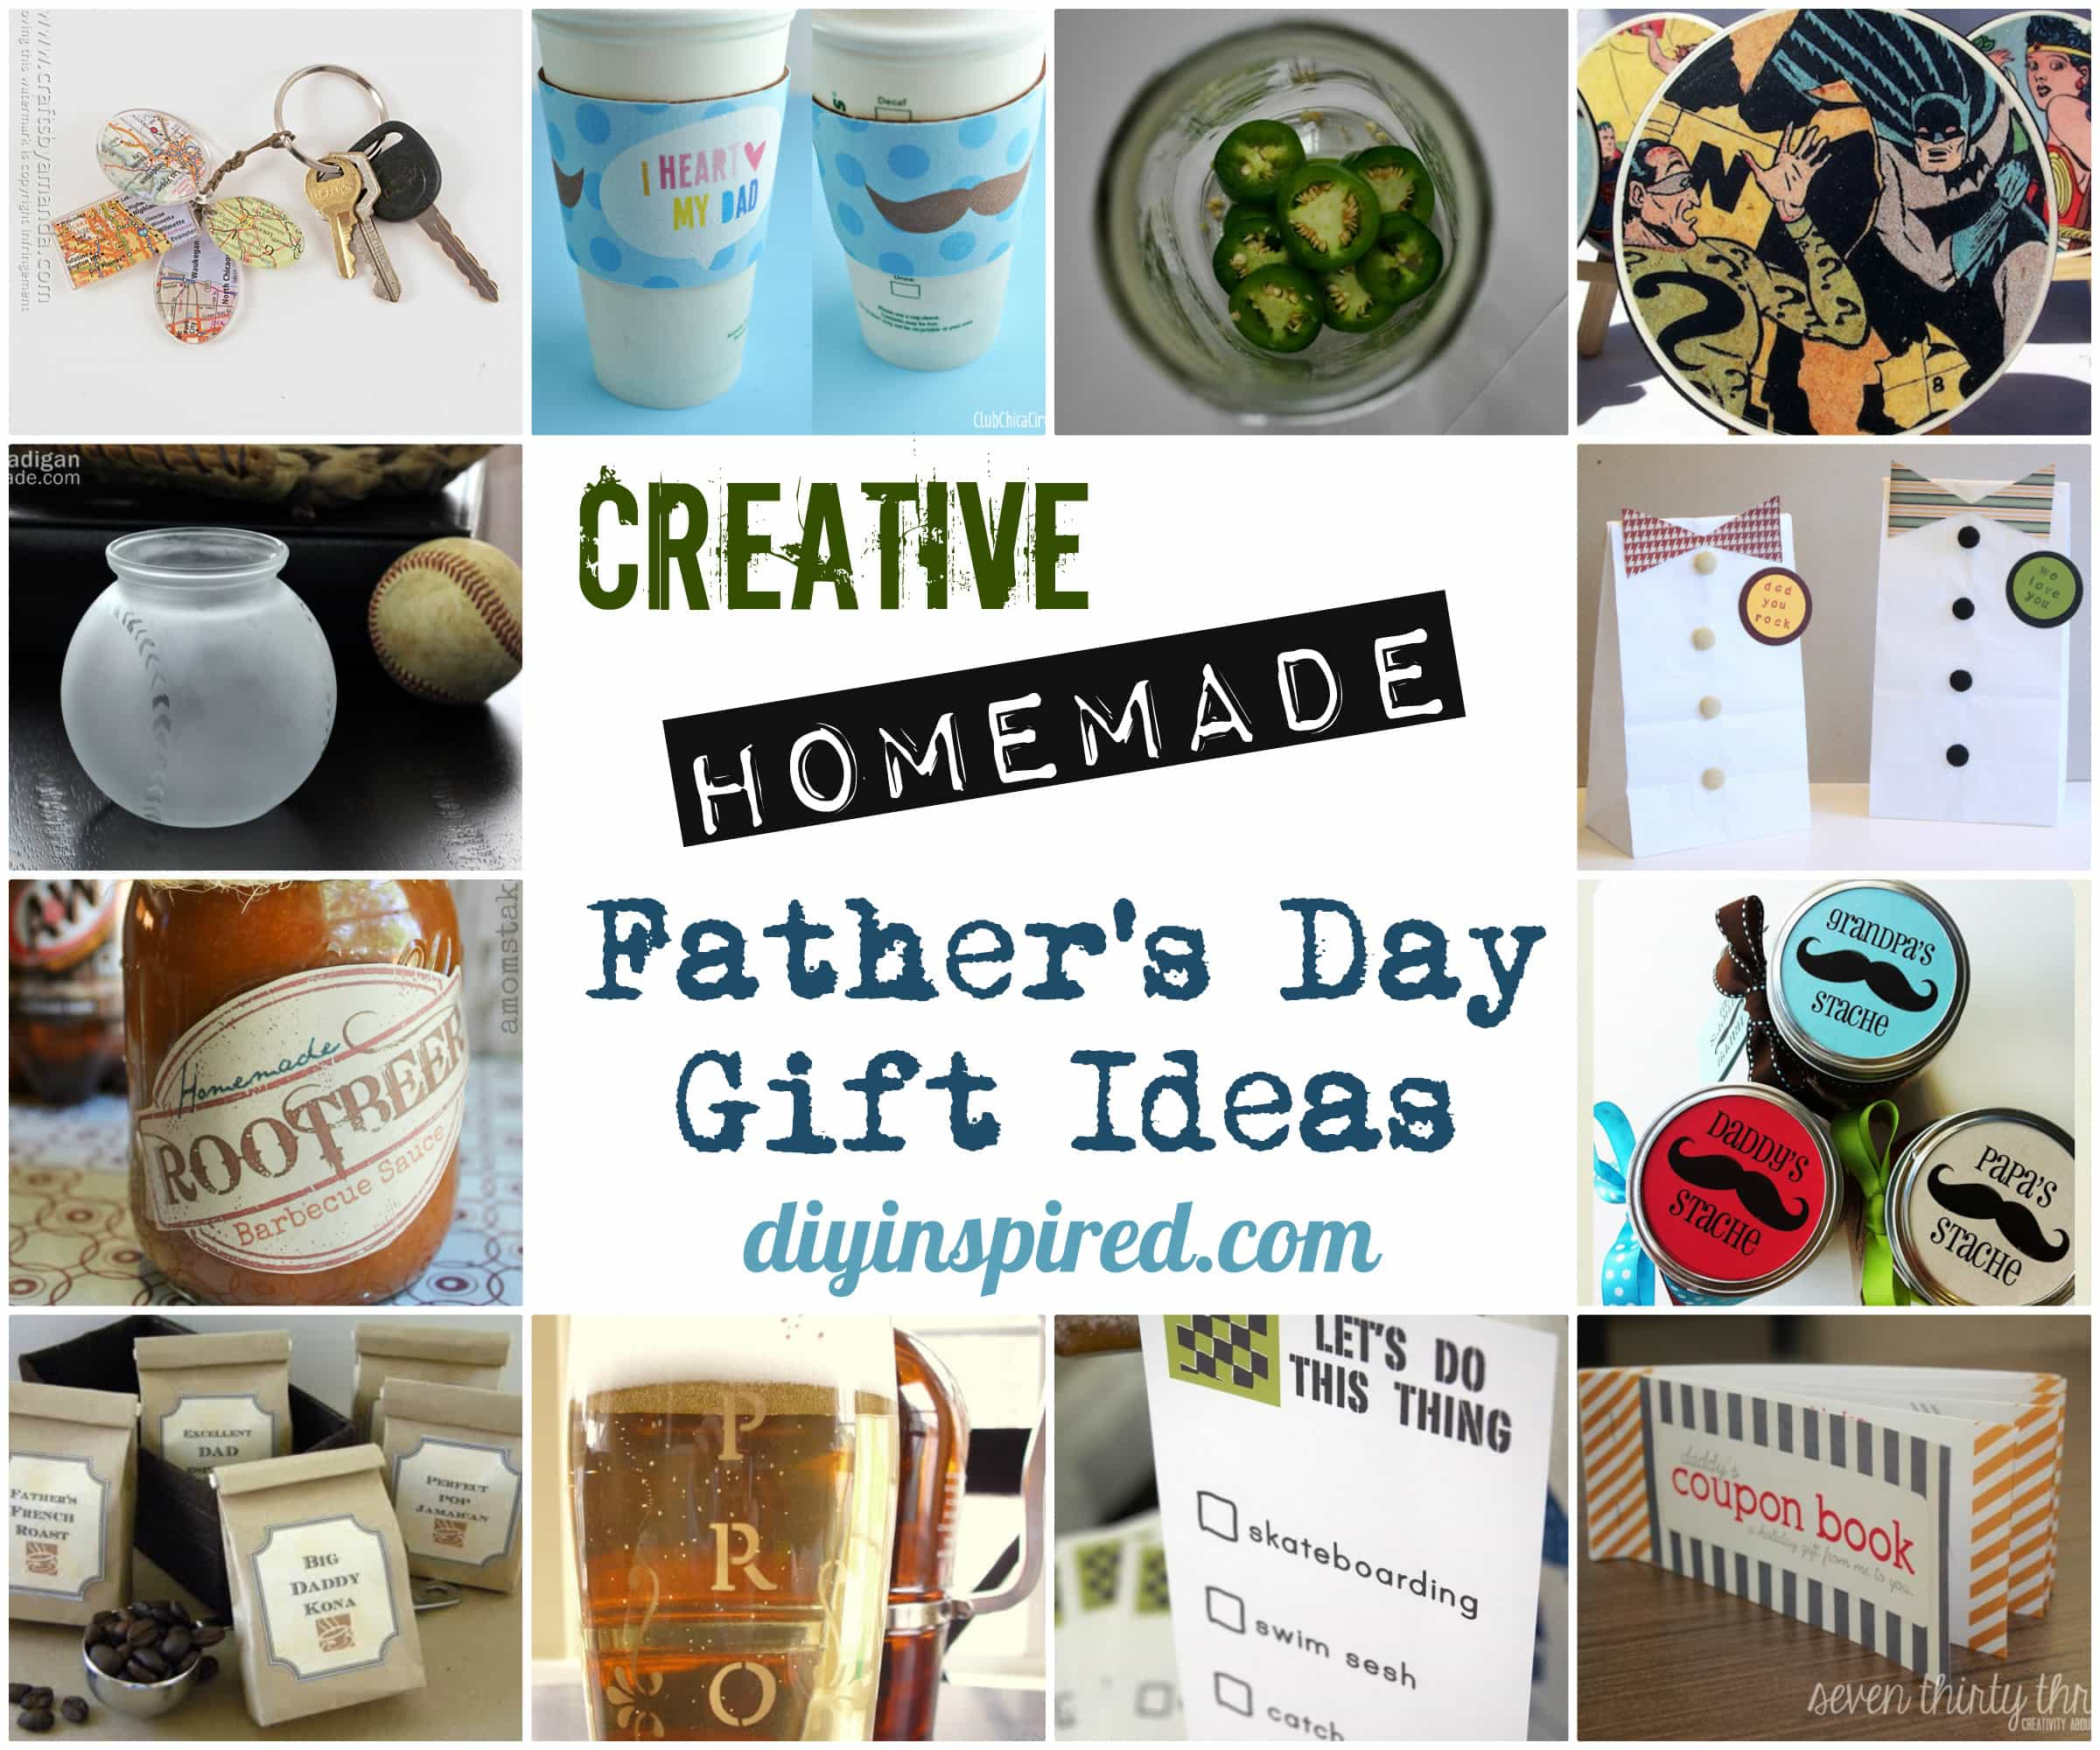 Creative Homemade Fathers Day Gift Ideas : fathers day gift ideas - princetonregatta.org